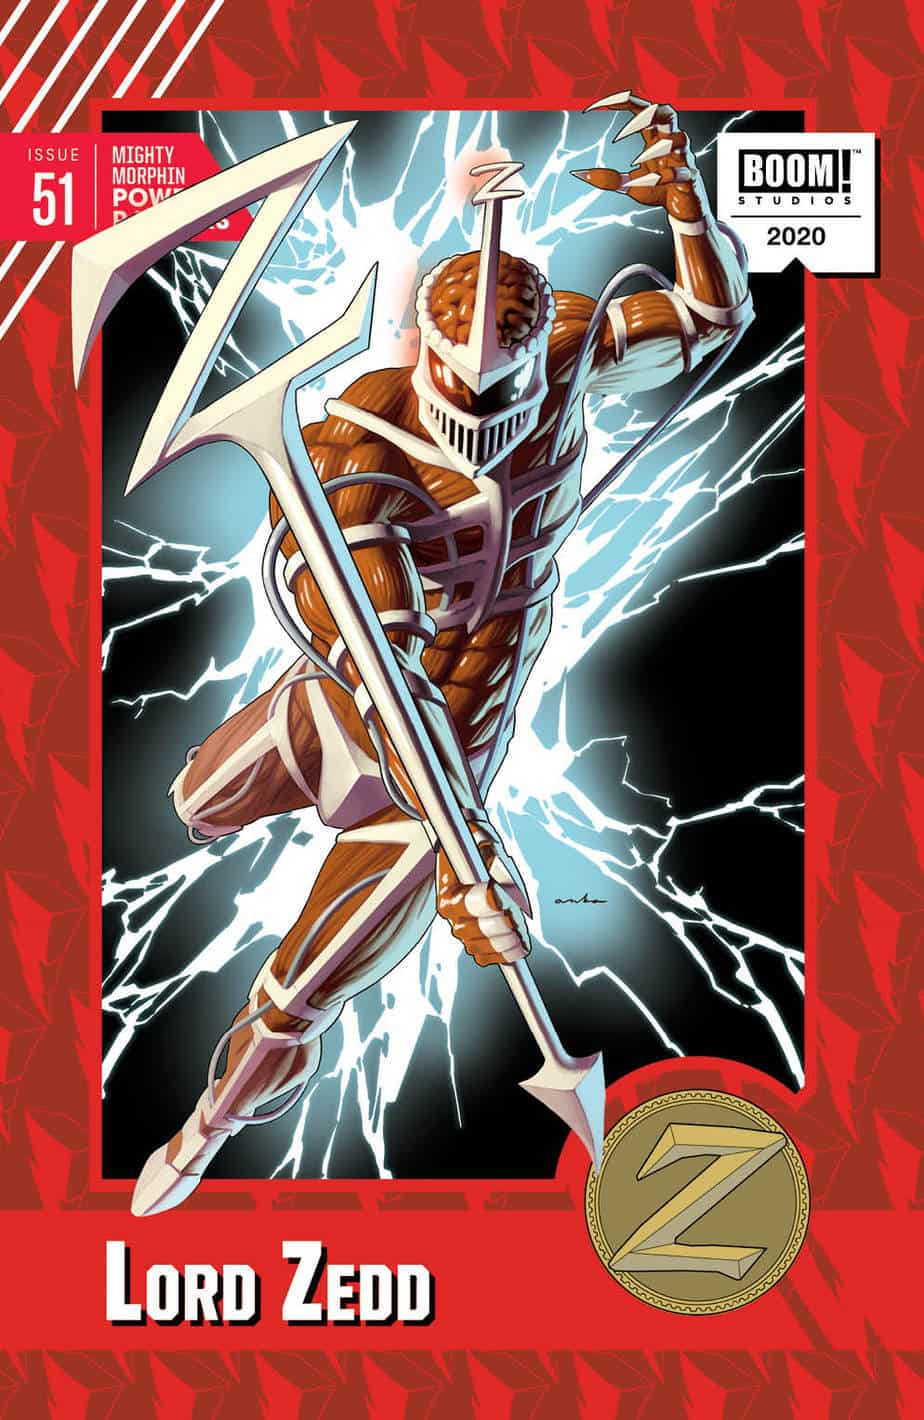 MIGHTY MORPHIN POWER RANGERS #51 - Trading Card Variant